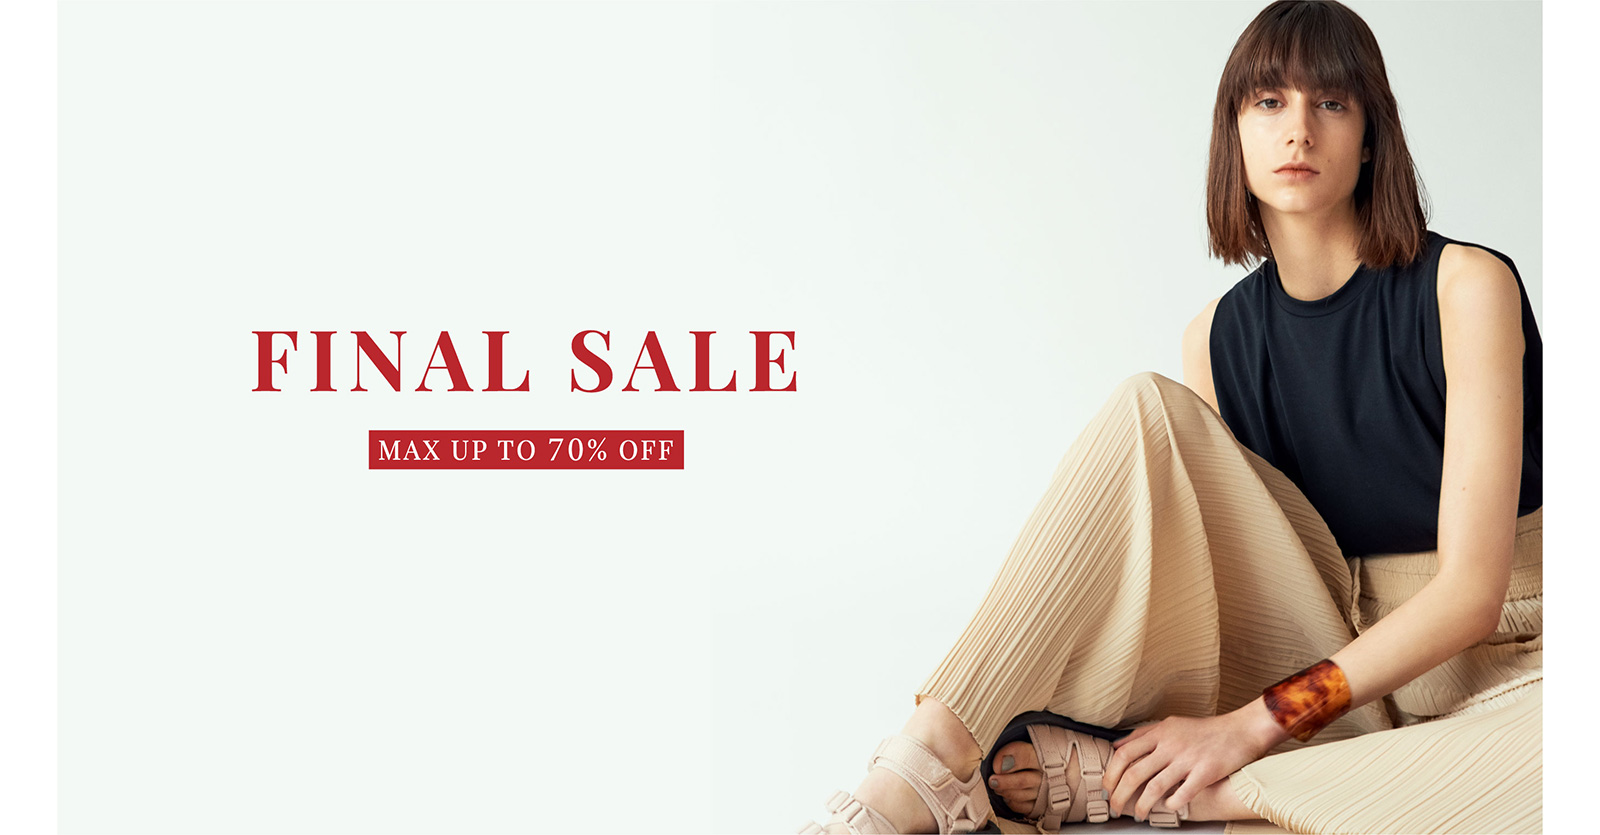 FINAL SALE MAX UP TO 70% OFF